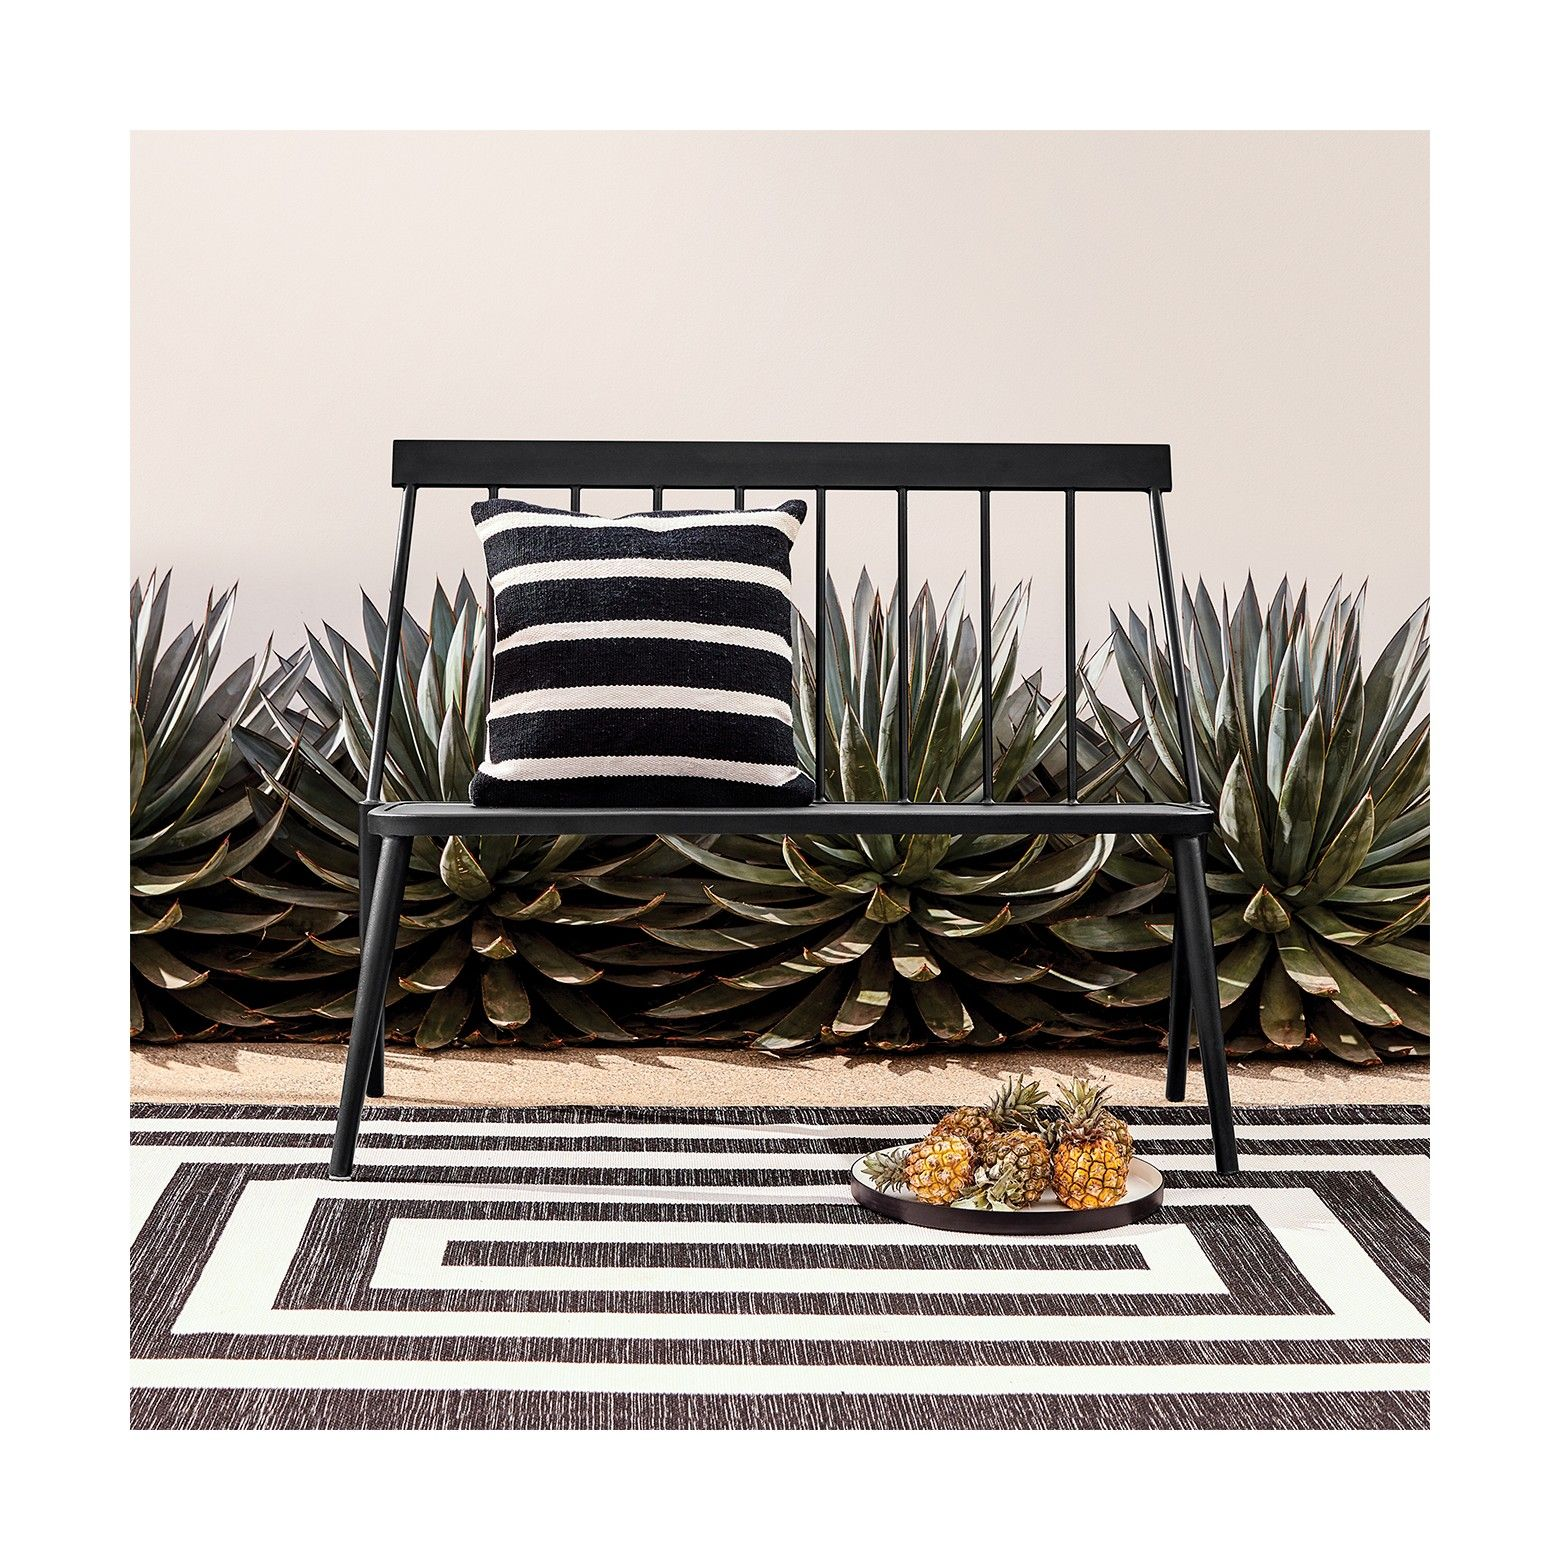 Surprising Windsor Metal Stack Patio Loveseat Bench Black Project 62 Bralicious Painted Fabric Chair Ideas Braliciousco